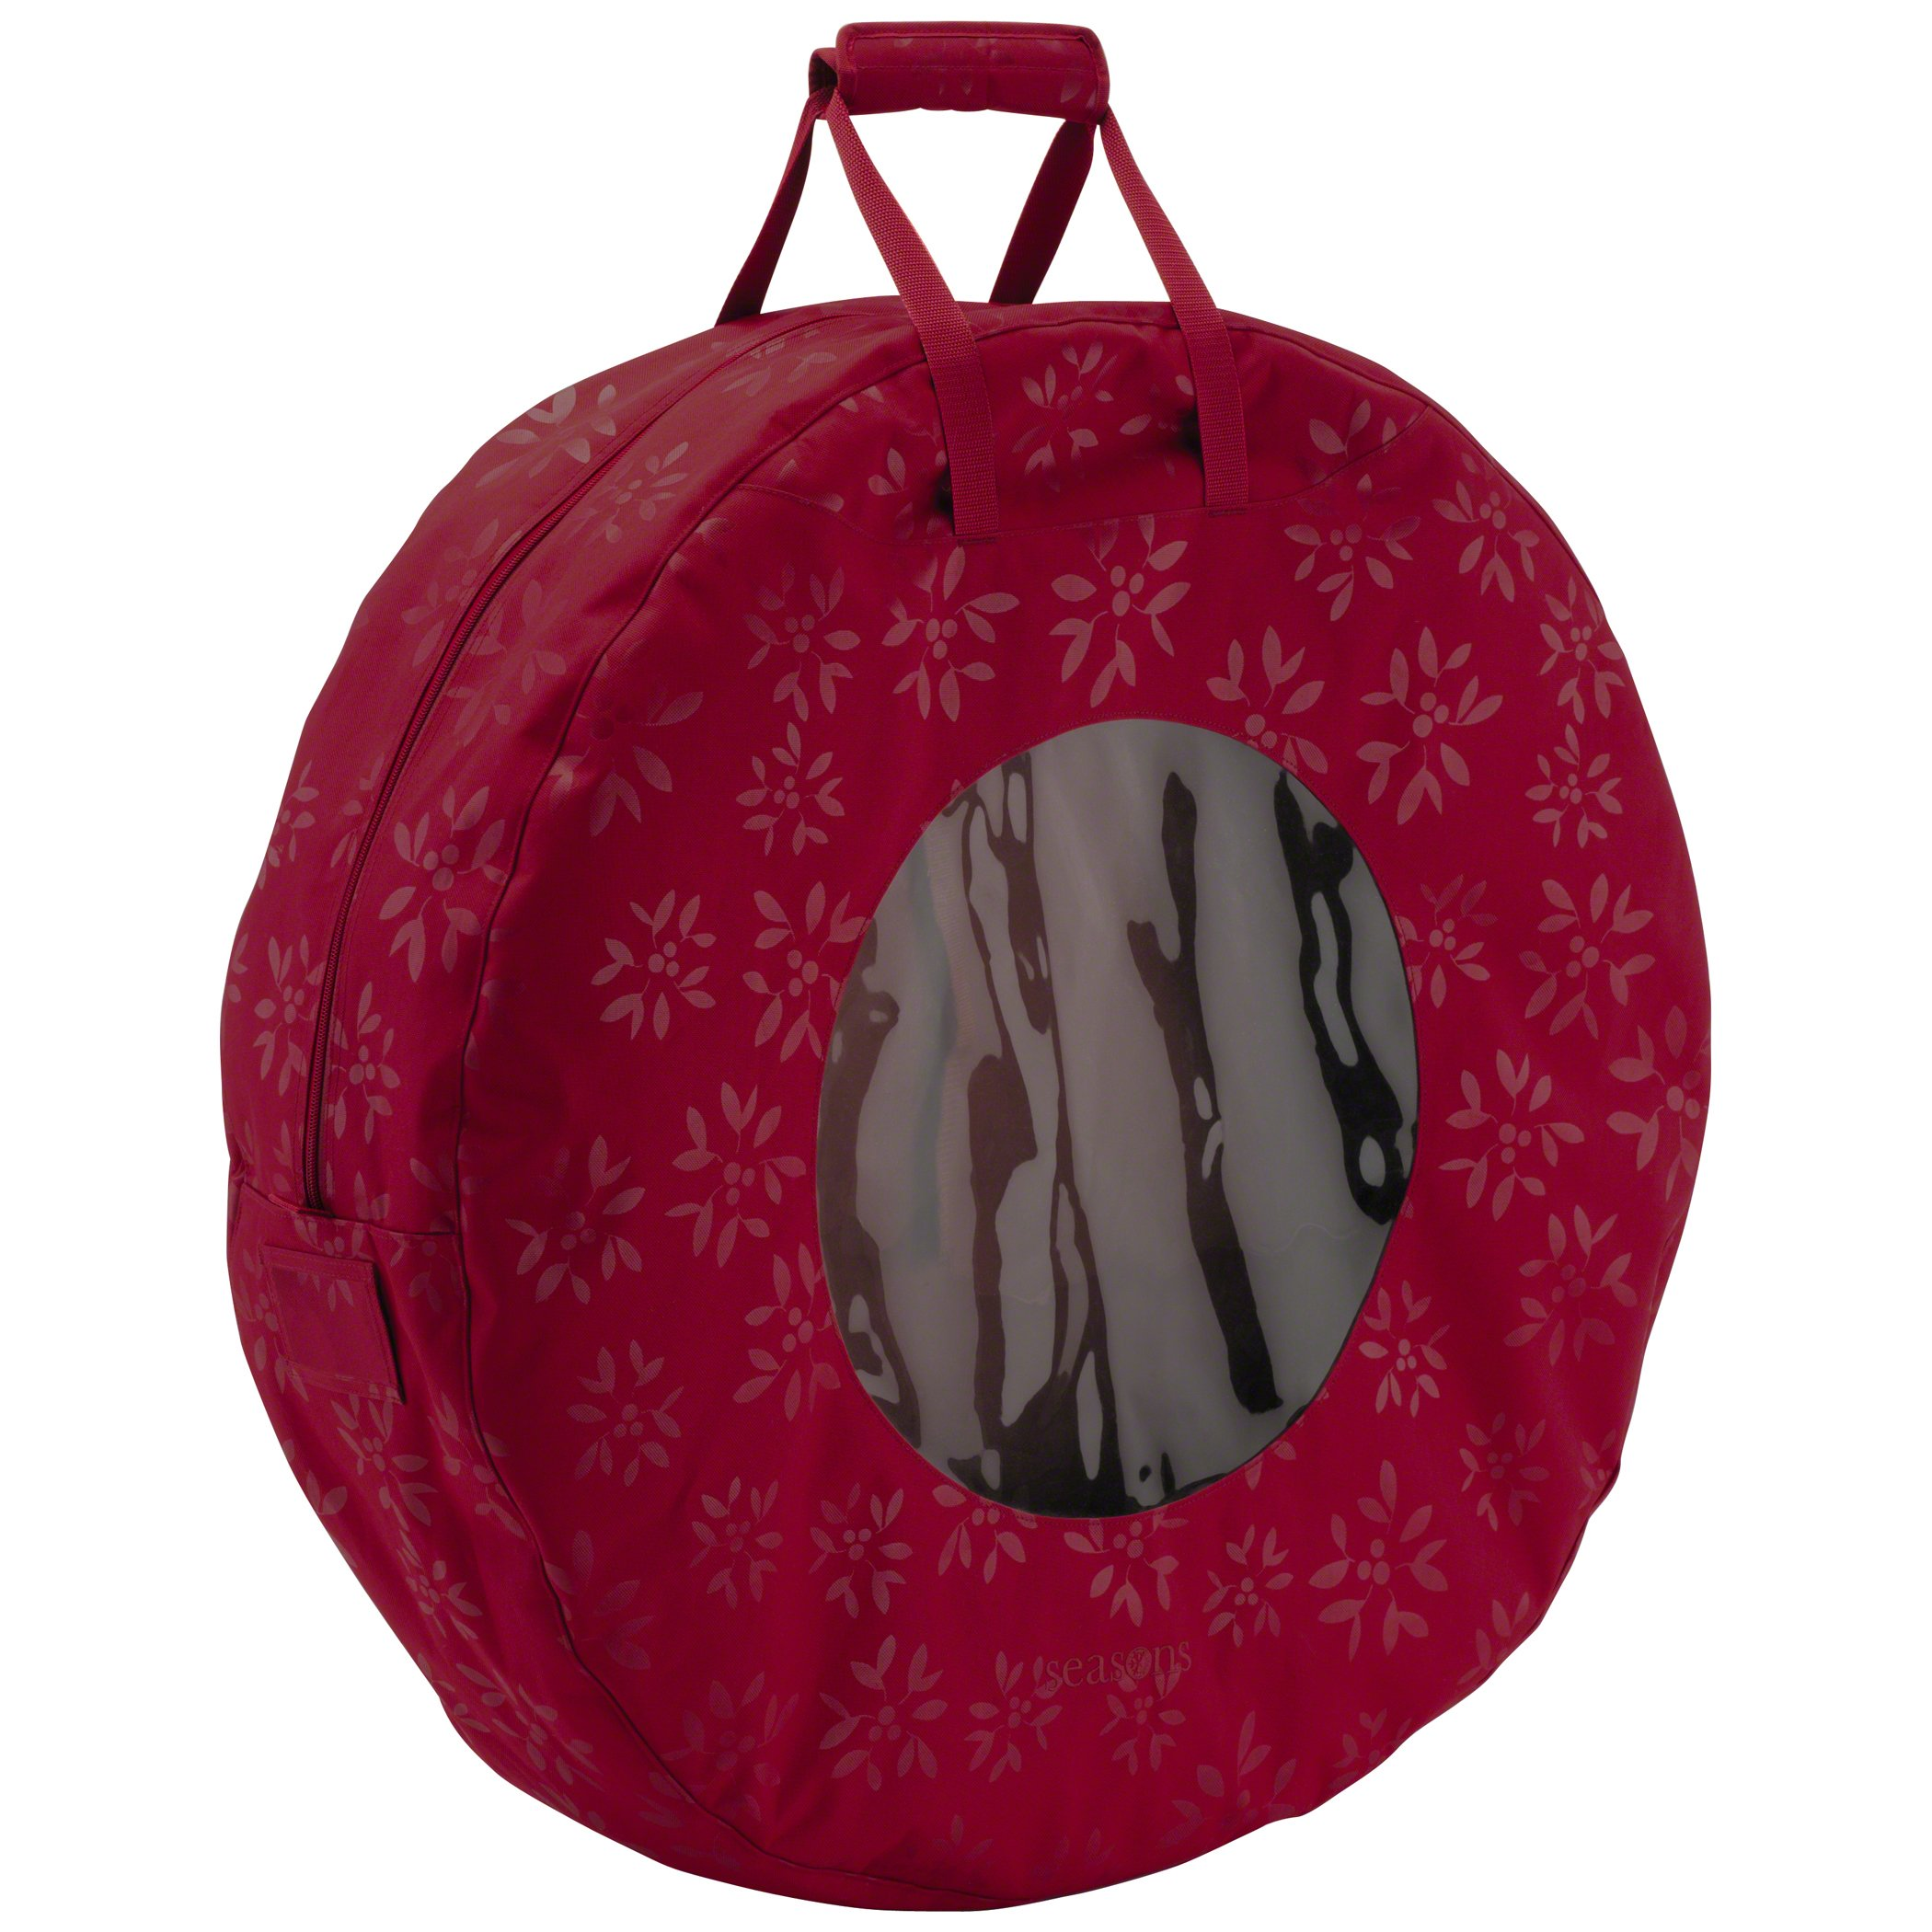 Classic Accessories Seasons Holiday Wreath Storage Bag, Large